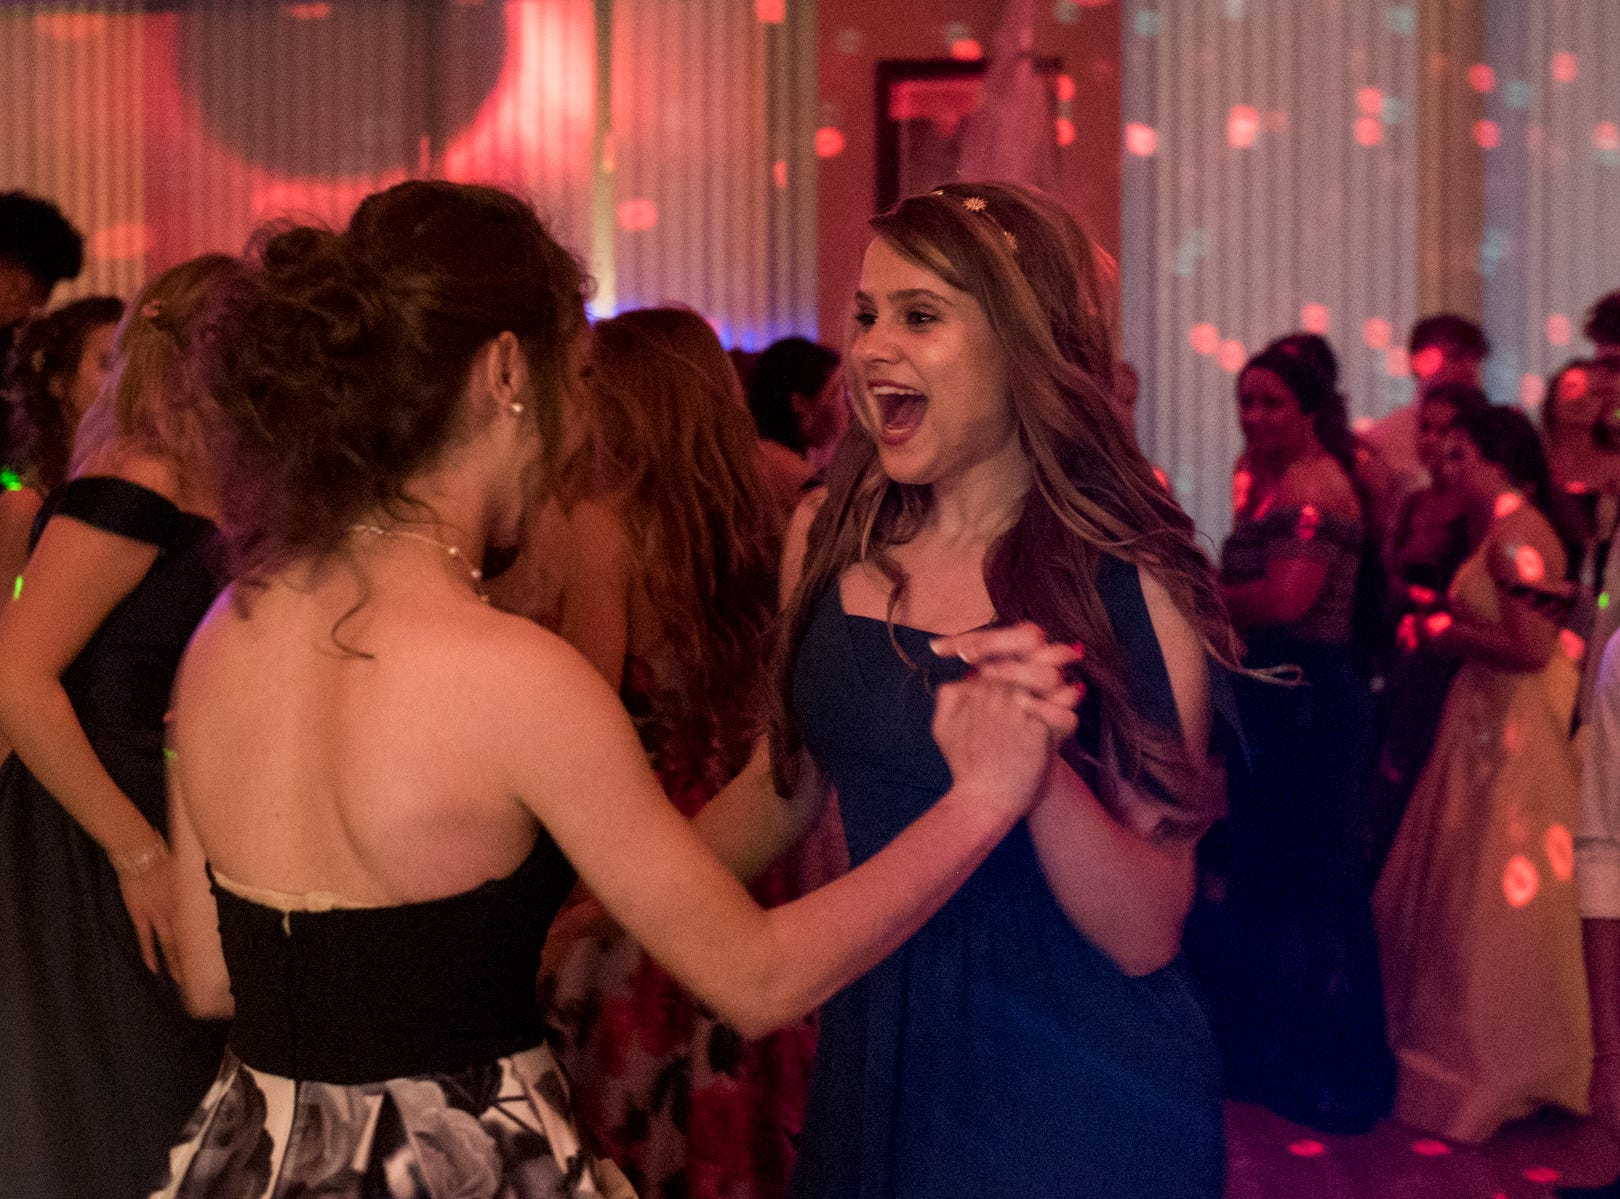 Lauren Goebel, left, and Adeleine Halsey, right, sing and dance together during Evansville Day School's prom held at the Hadi Shrine Banquet Hall in downtown Evansville, Ind., Saturday, April 27, 2019.